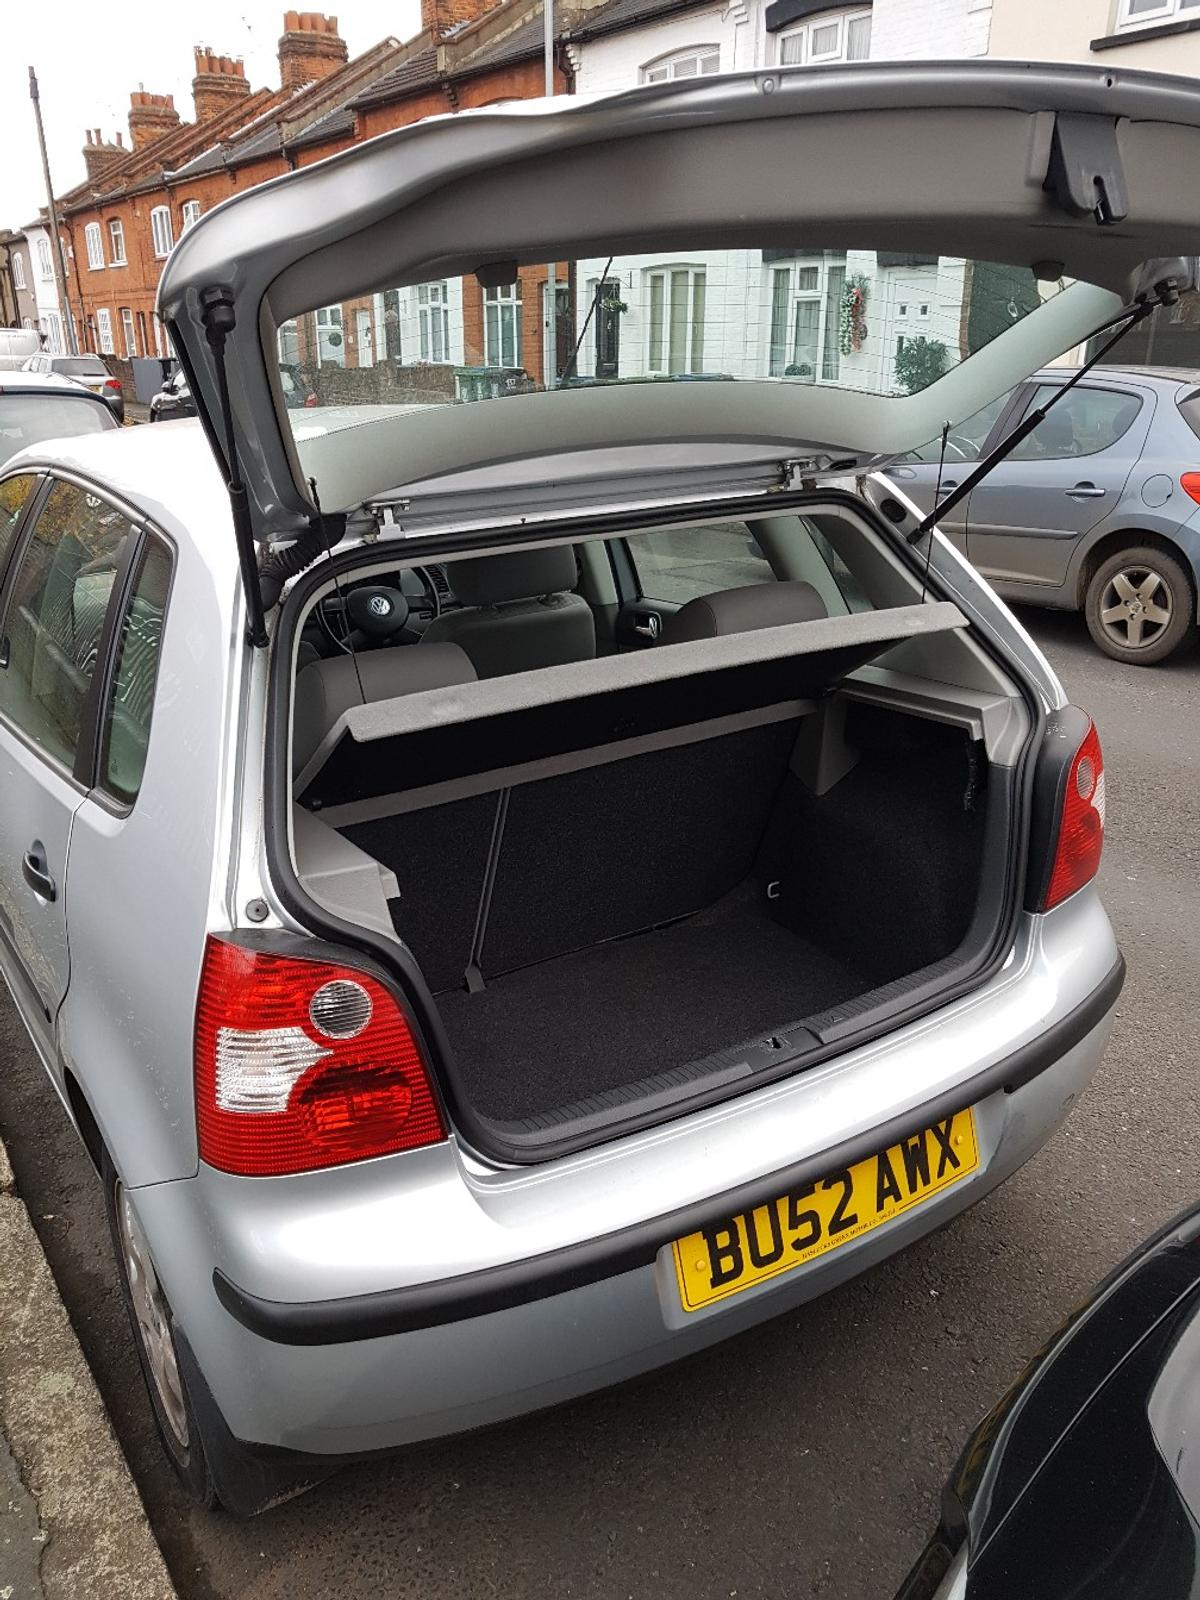 VW Polo 1 4 automatic in Watford for £1,450 00 for sale - Shpock